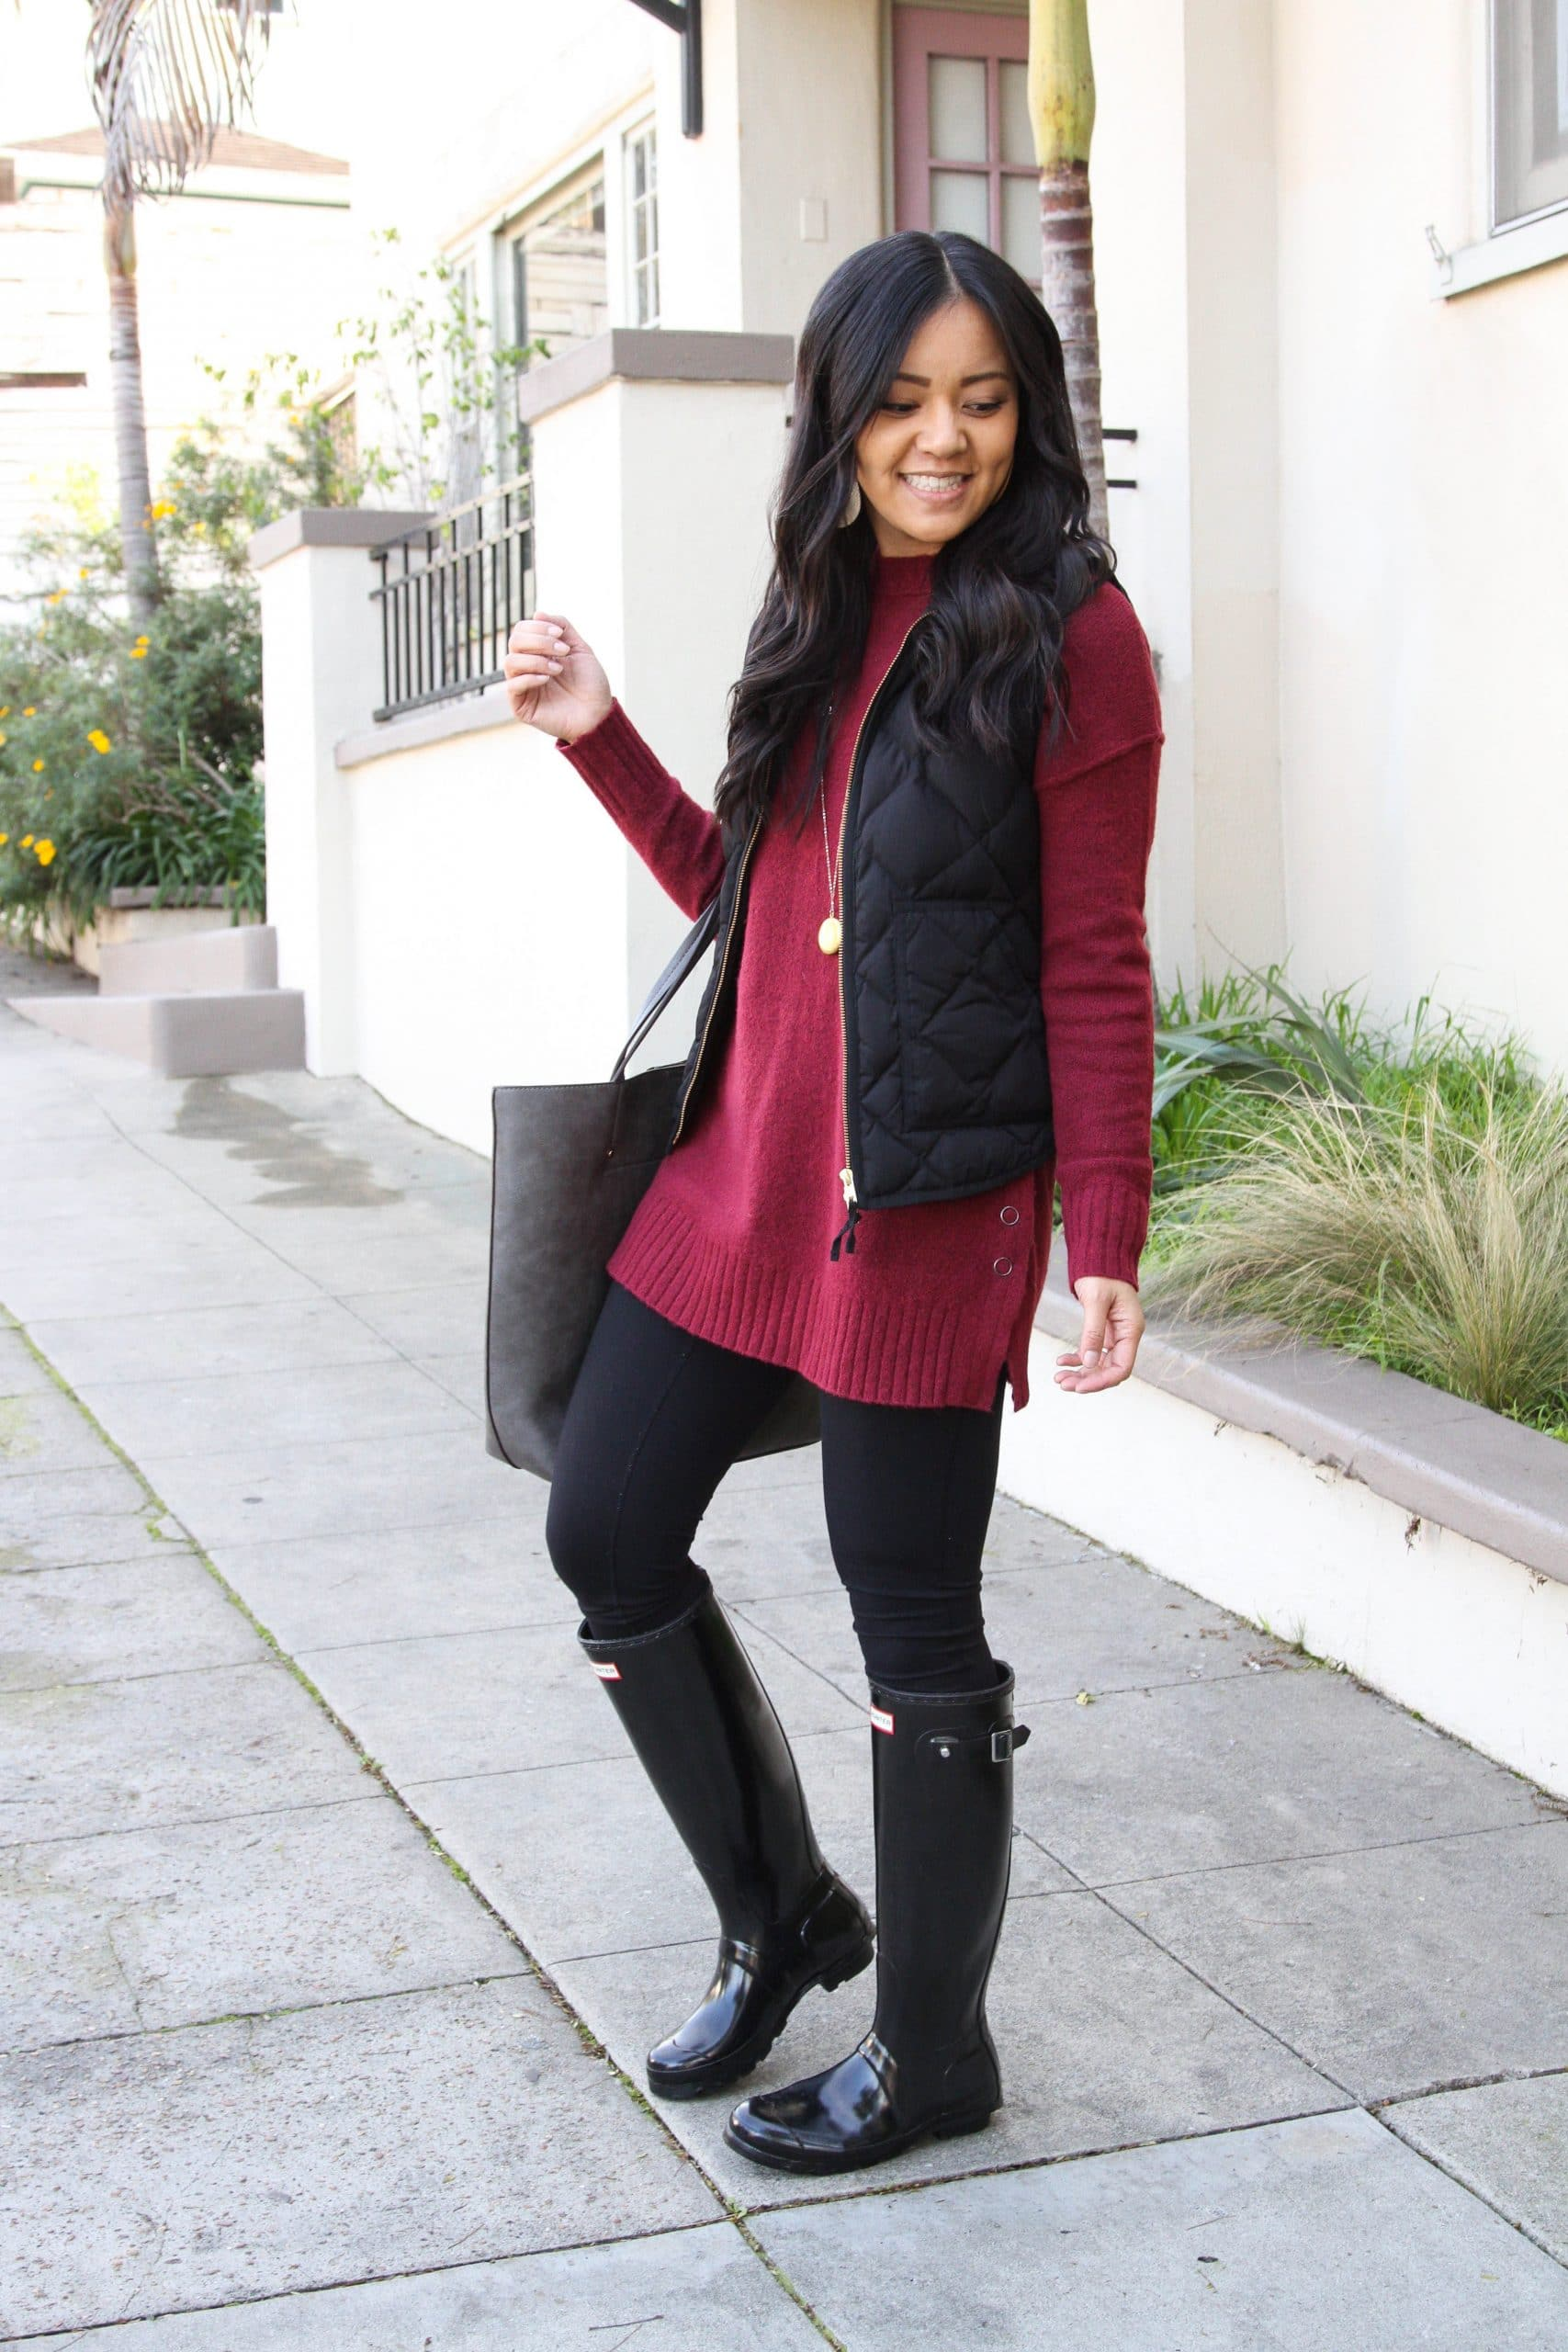 Winter Leggings Outfit: black leggings + maroon tunic sweater + black rain boots + black quilted vest + gold leather earrings + gray tote + gold pendant necklace